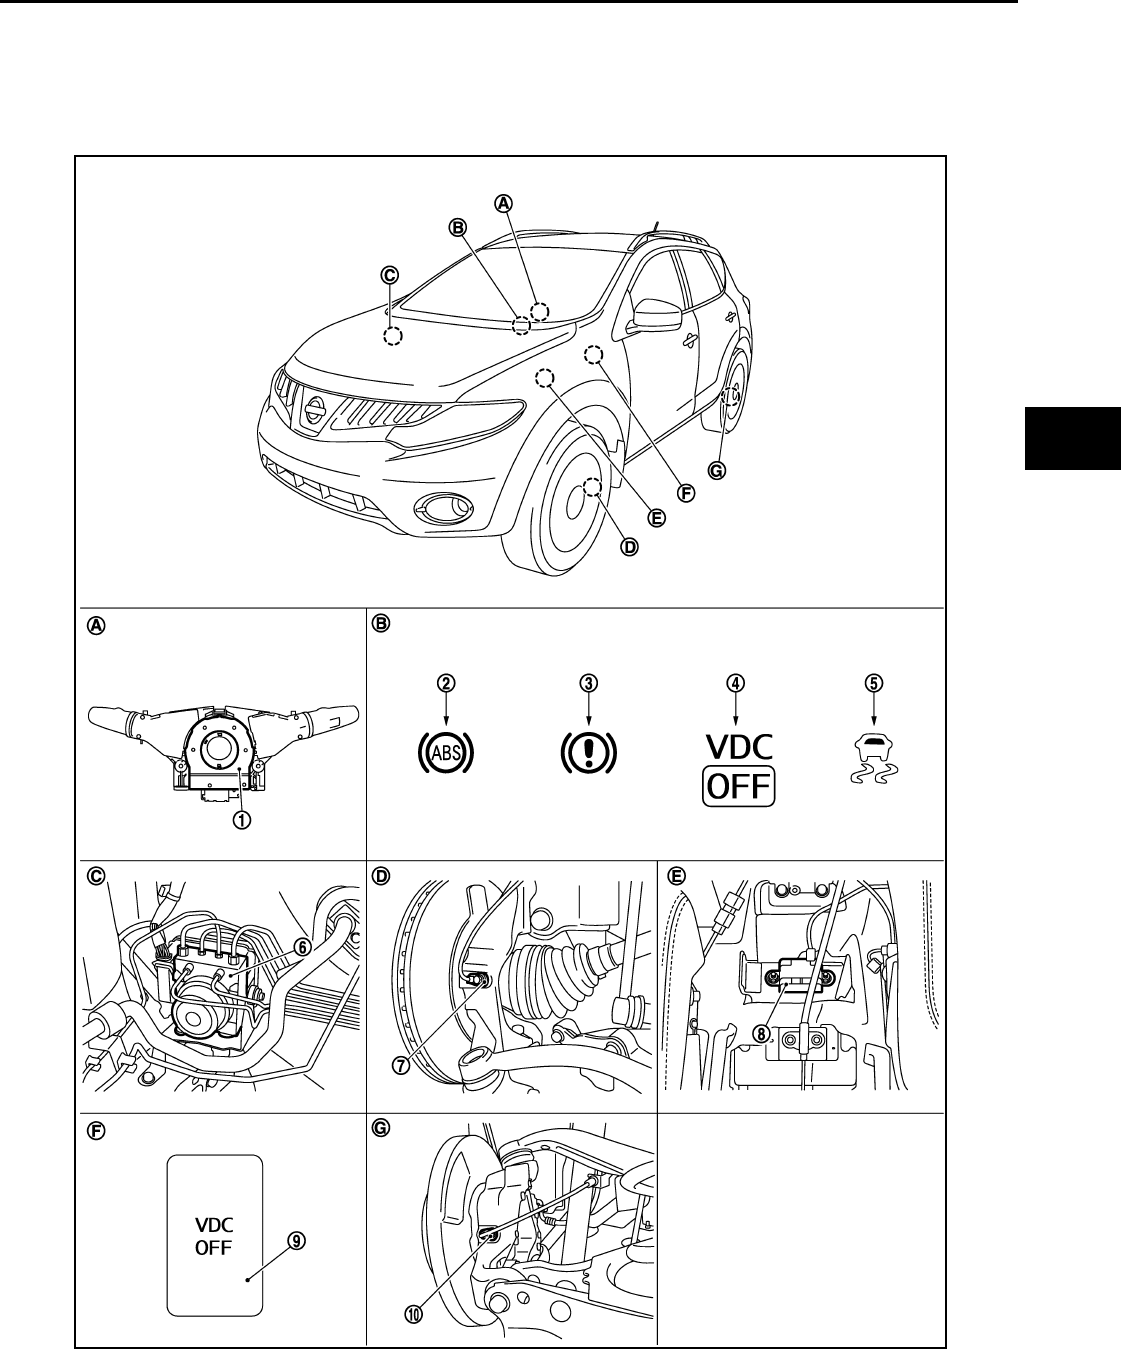 2009 nissan murano alternator wiring diagram murano free printable wiring diagrams